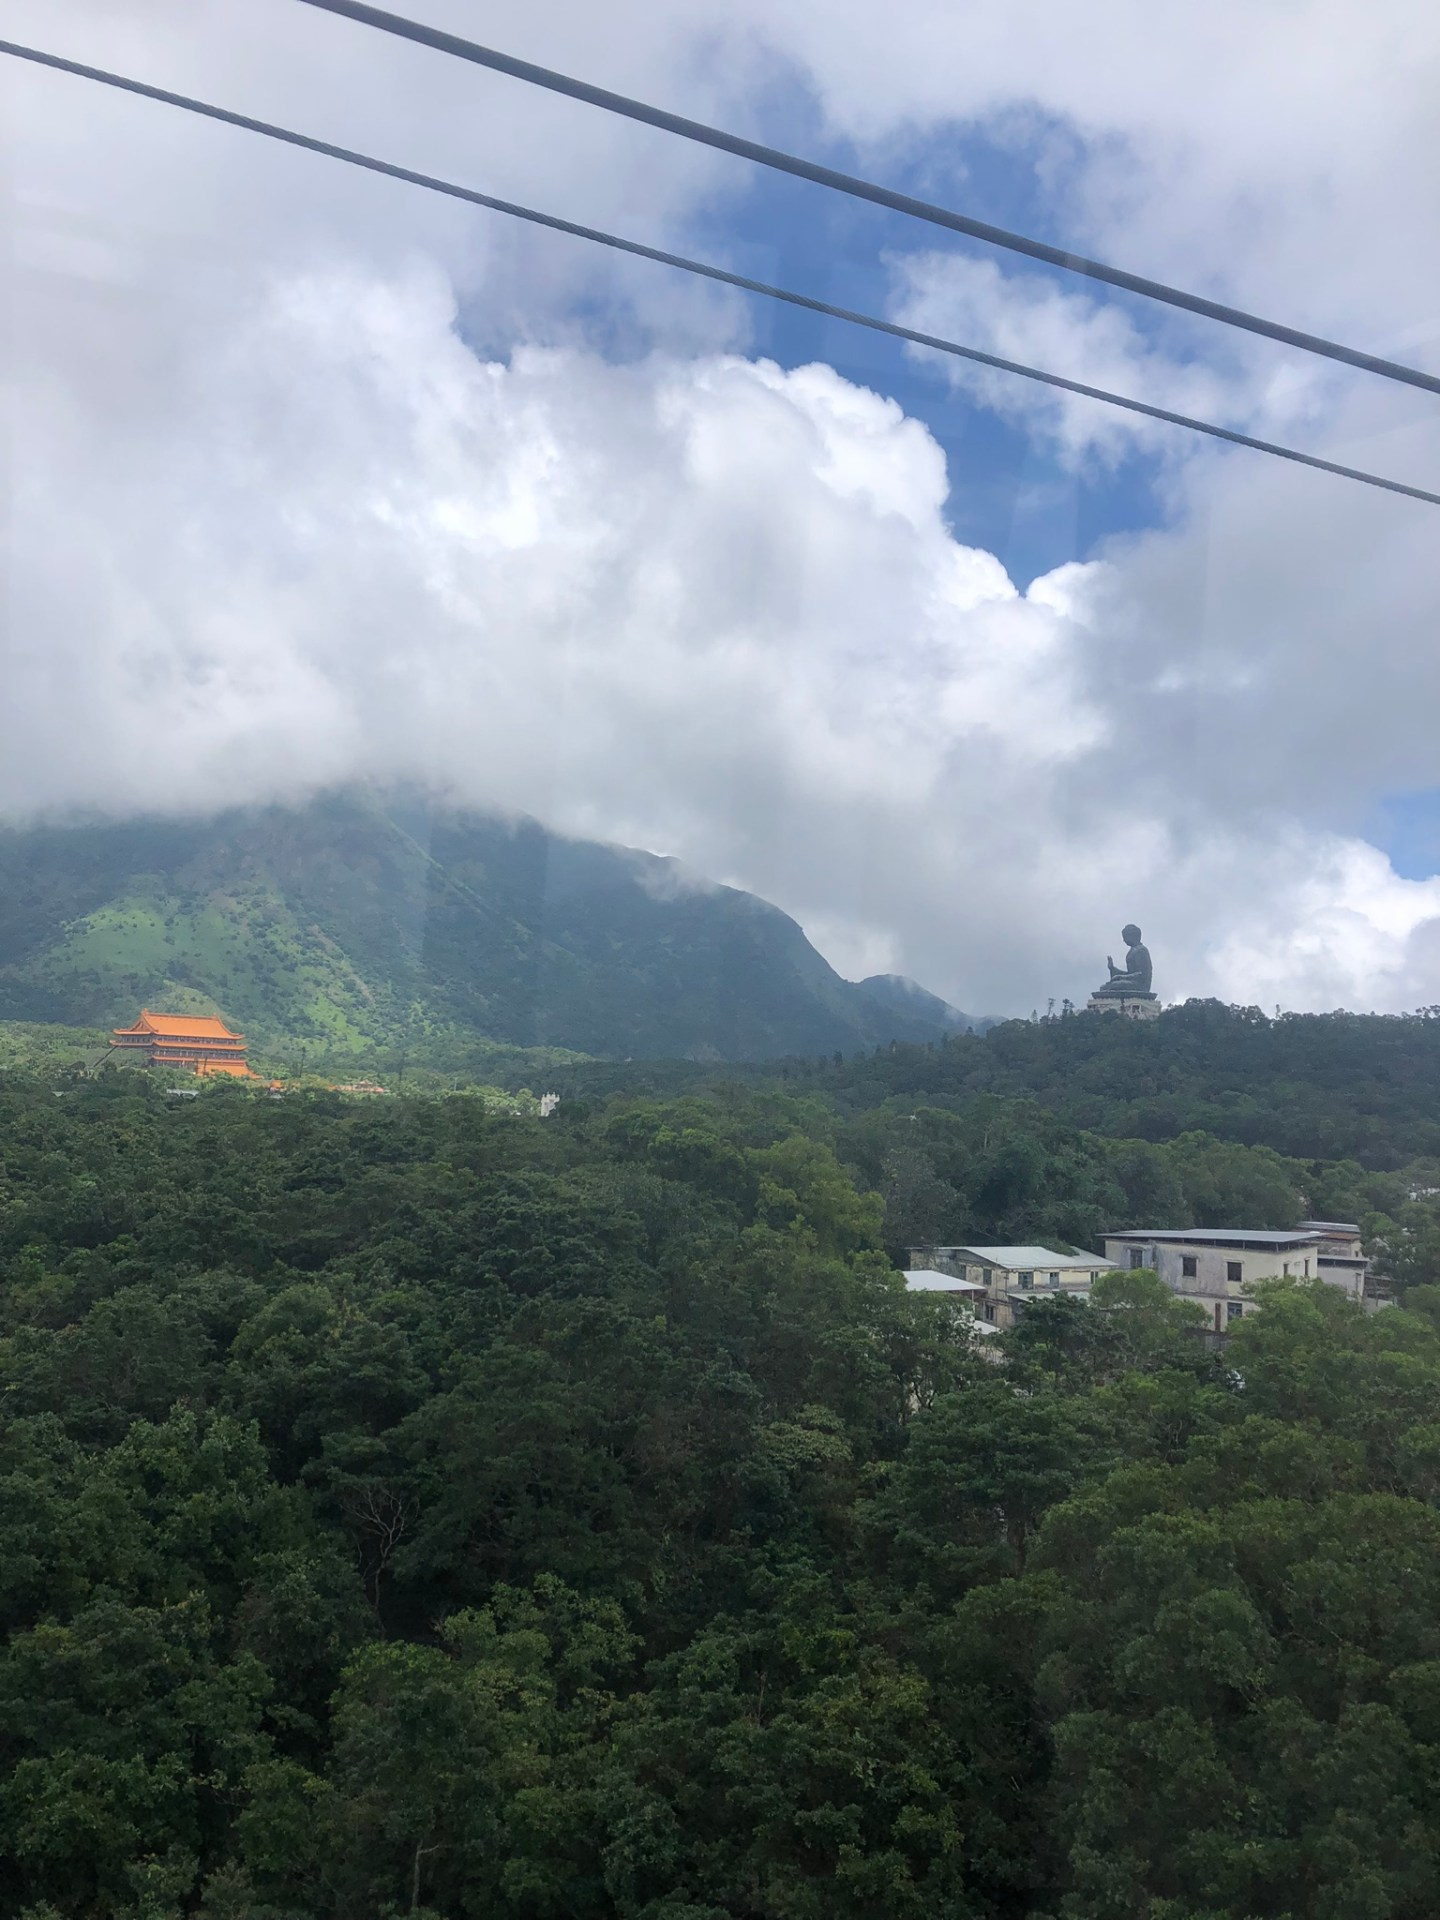 Tian Tan Buddha from the Ngong Ping 360 gondola